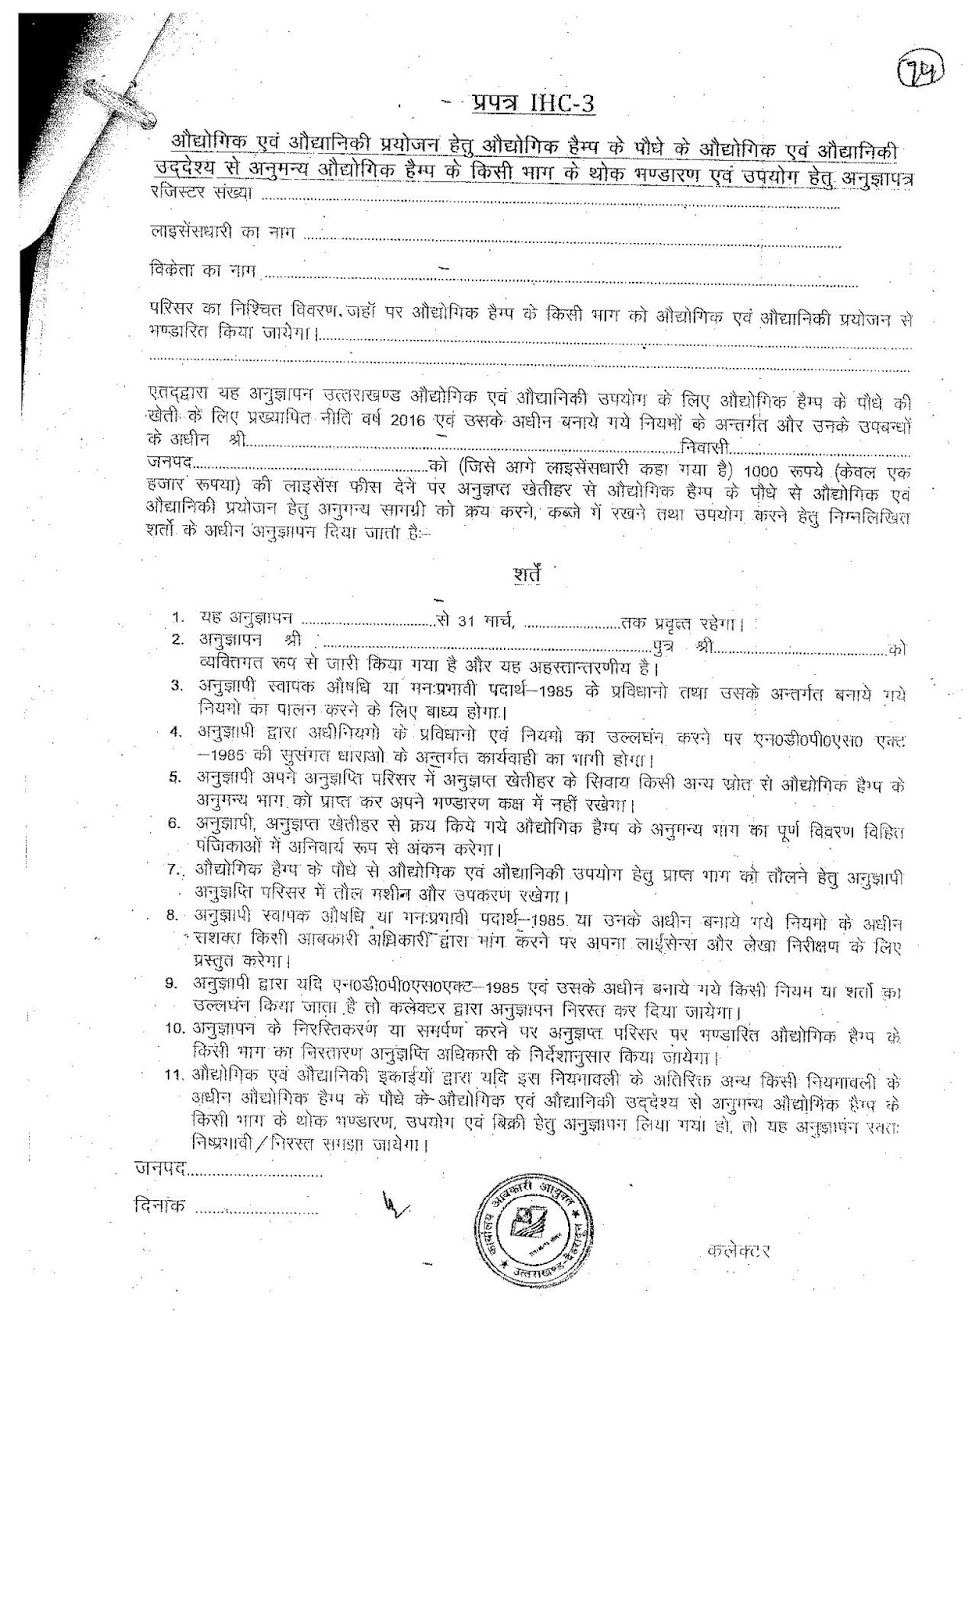 Wholesale, store and uses of hemp in Uttarakhadn govt notification and application in Hindi